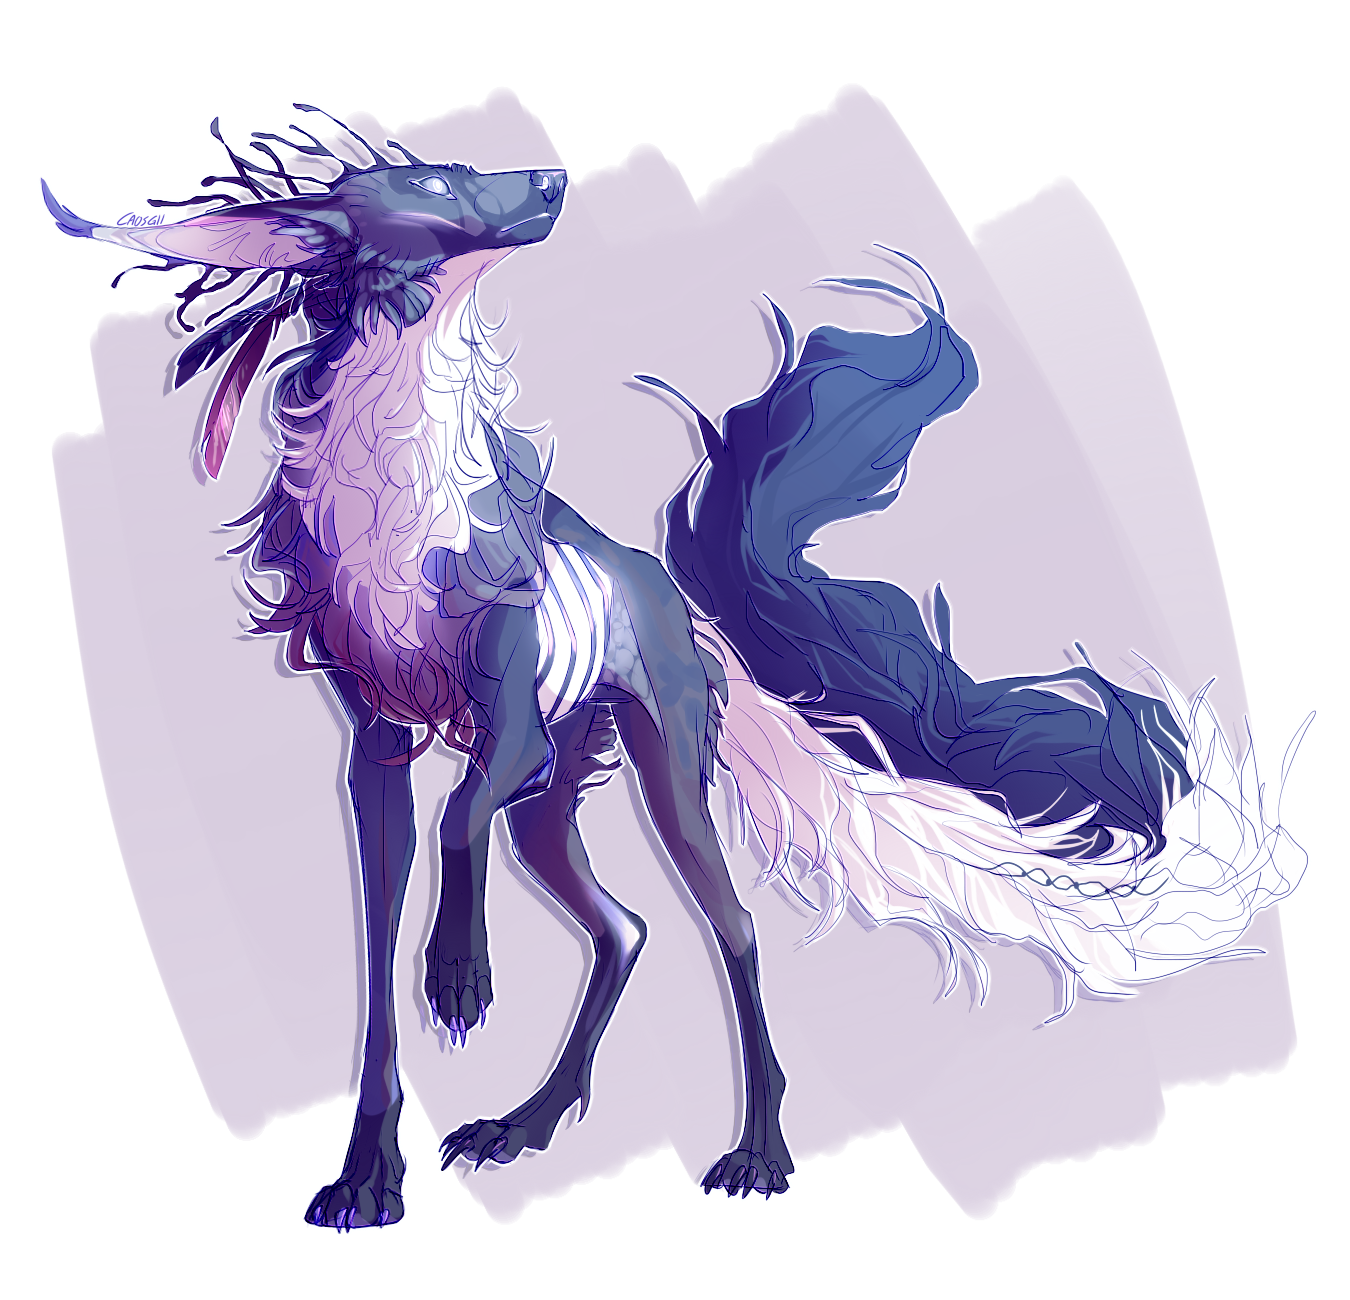 Https Arcanineprincess97 Deviantart Com Art A Icon I Made Of My Nightfury 724551789 Creature Concept Art Creature Art Animal Art